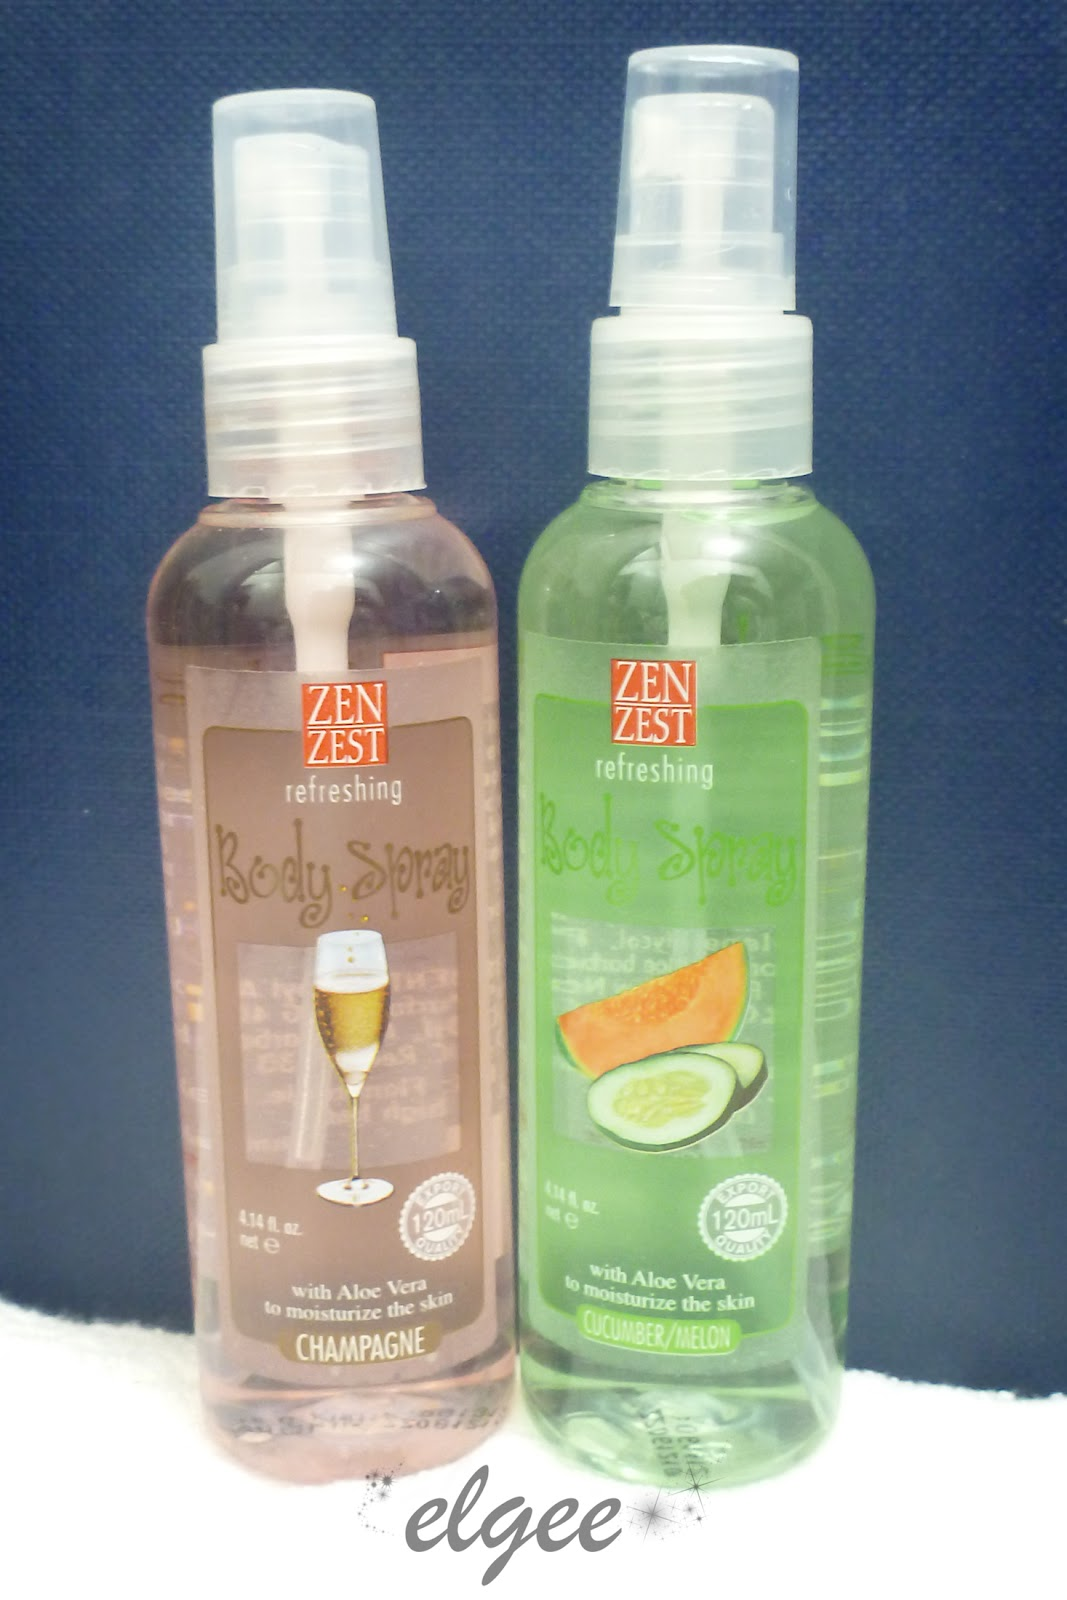 My Zenzest Body Spray Champagne Foam I Got Two Refreshing And Cucumber Melon Scents It For 2 P160 Approx 4 Not Bad A 120ml Bottle